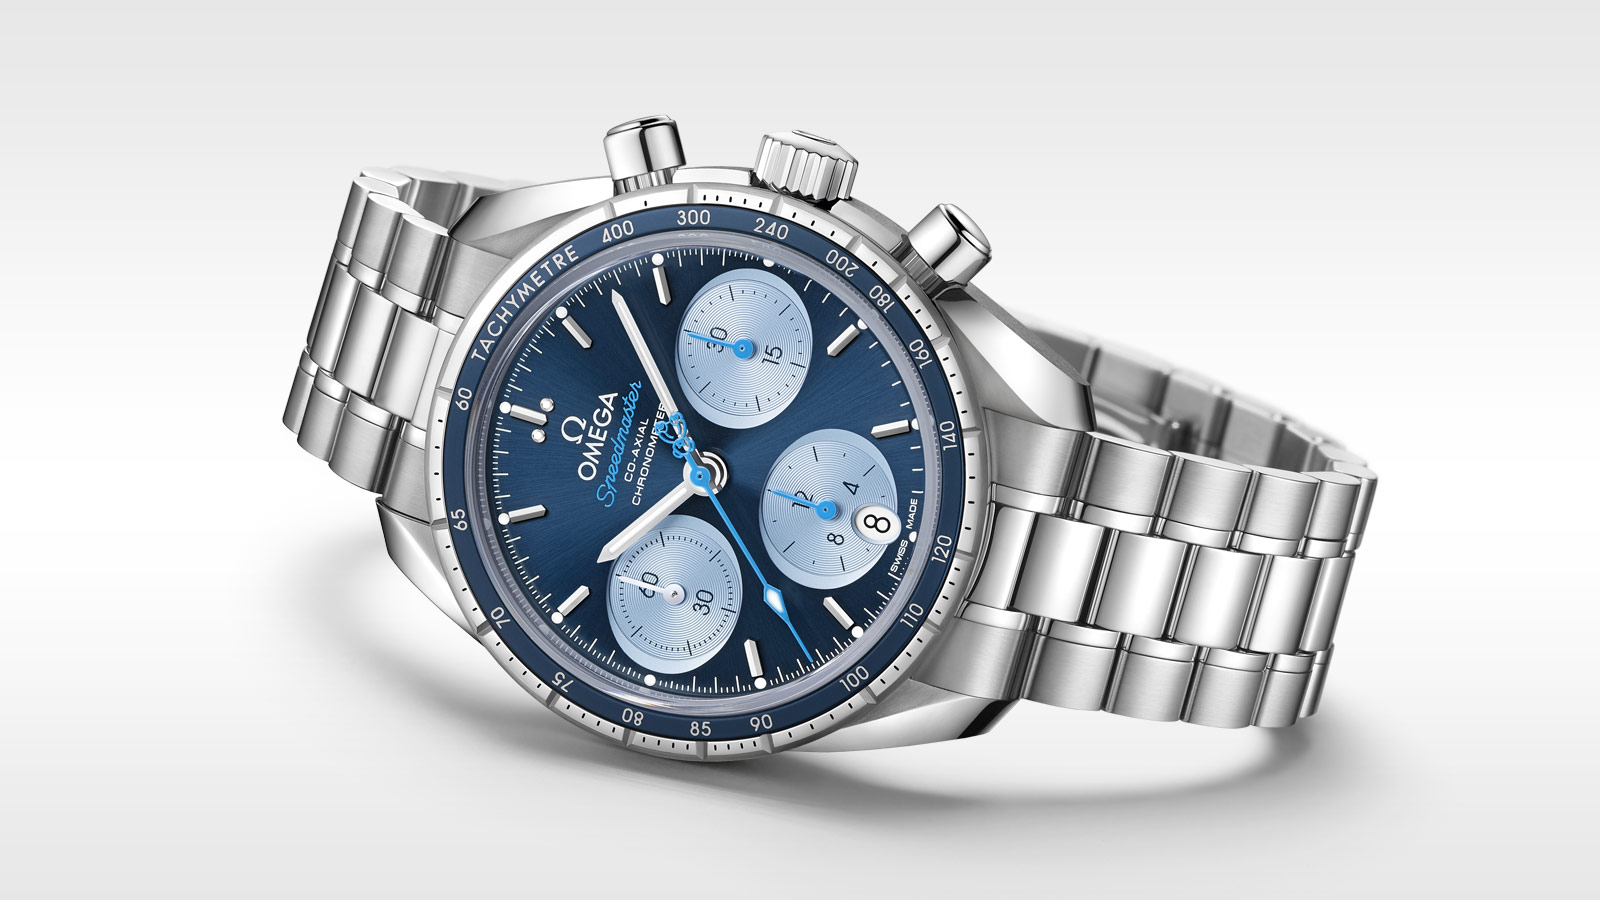 Speedmaster Speedmaster 38 мм Speedmaster 38 Co‑Axial Chronograph 38 mm - 324.30.38.50.03.002 - Просмотреть 2